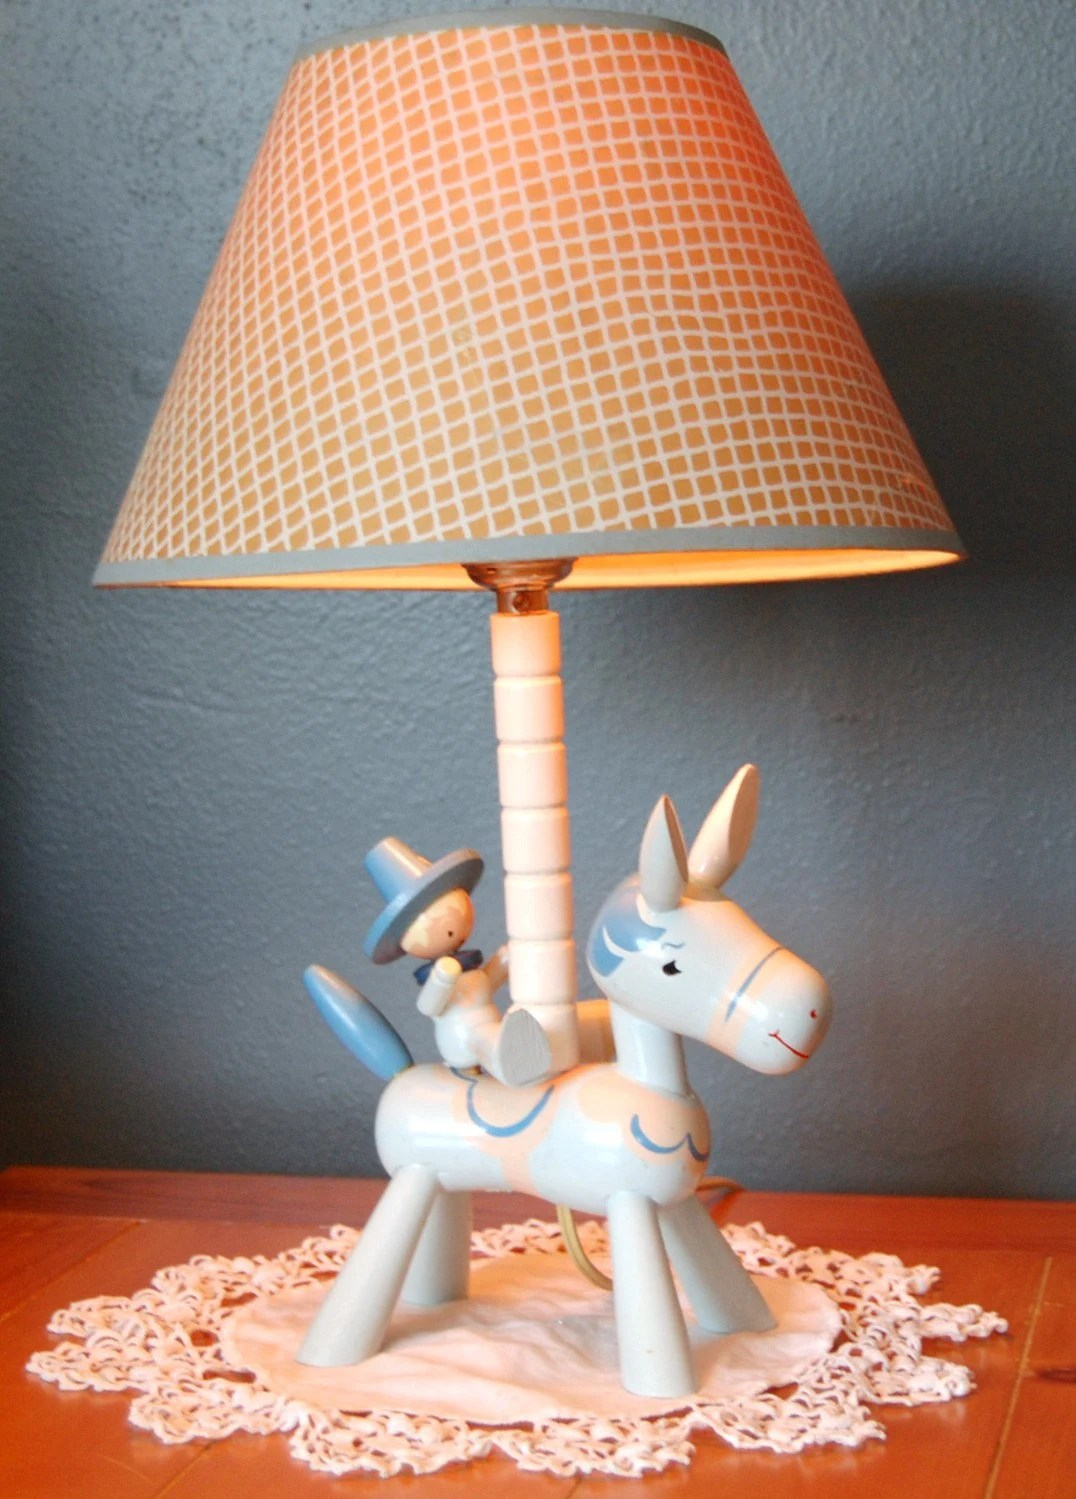 Lamp Sets With Usb Port